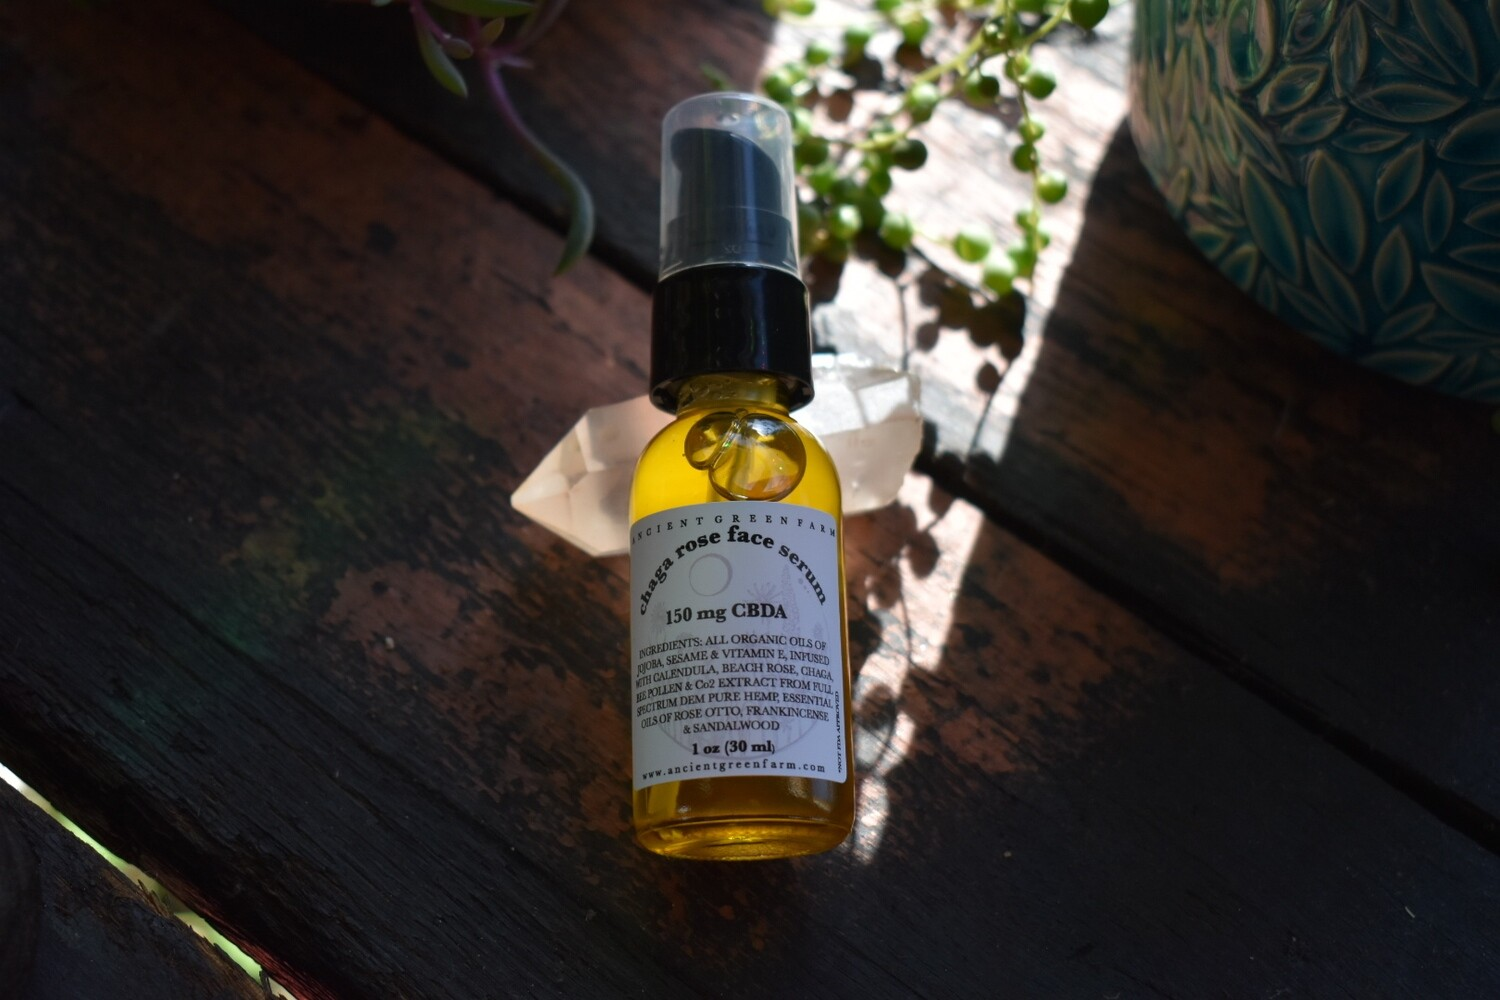 Chaga Rose Face Serum 150 mg